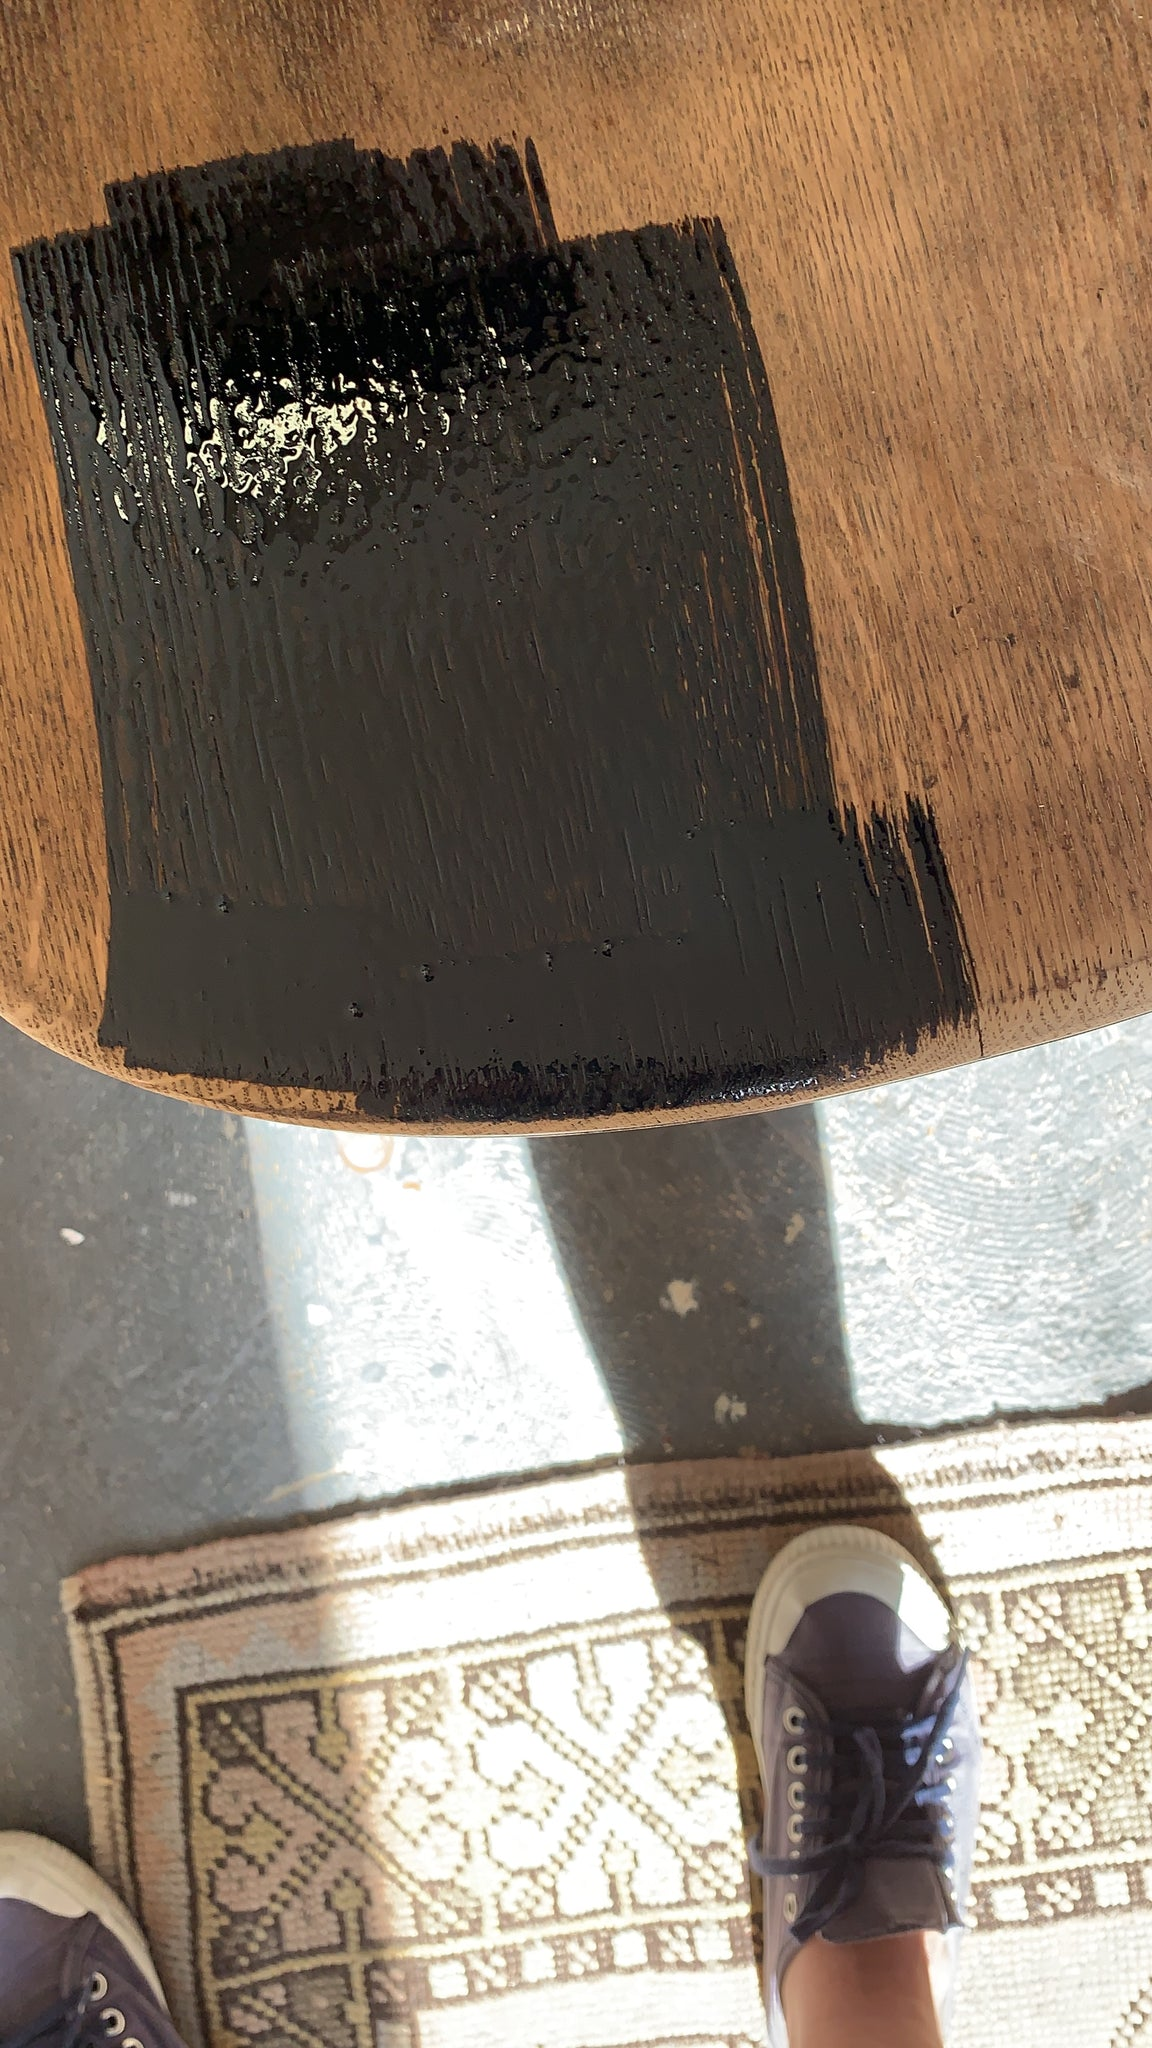 Stain being applied to a wood chairs